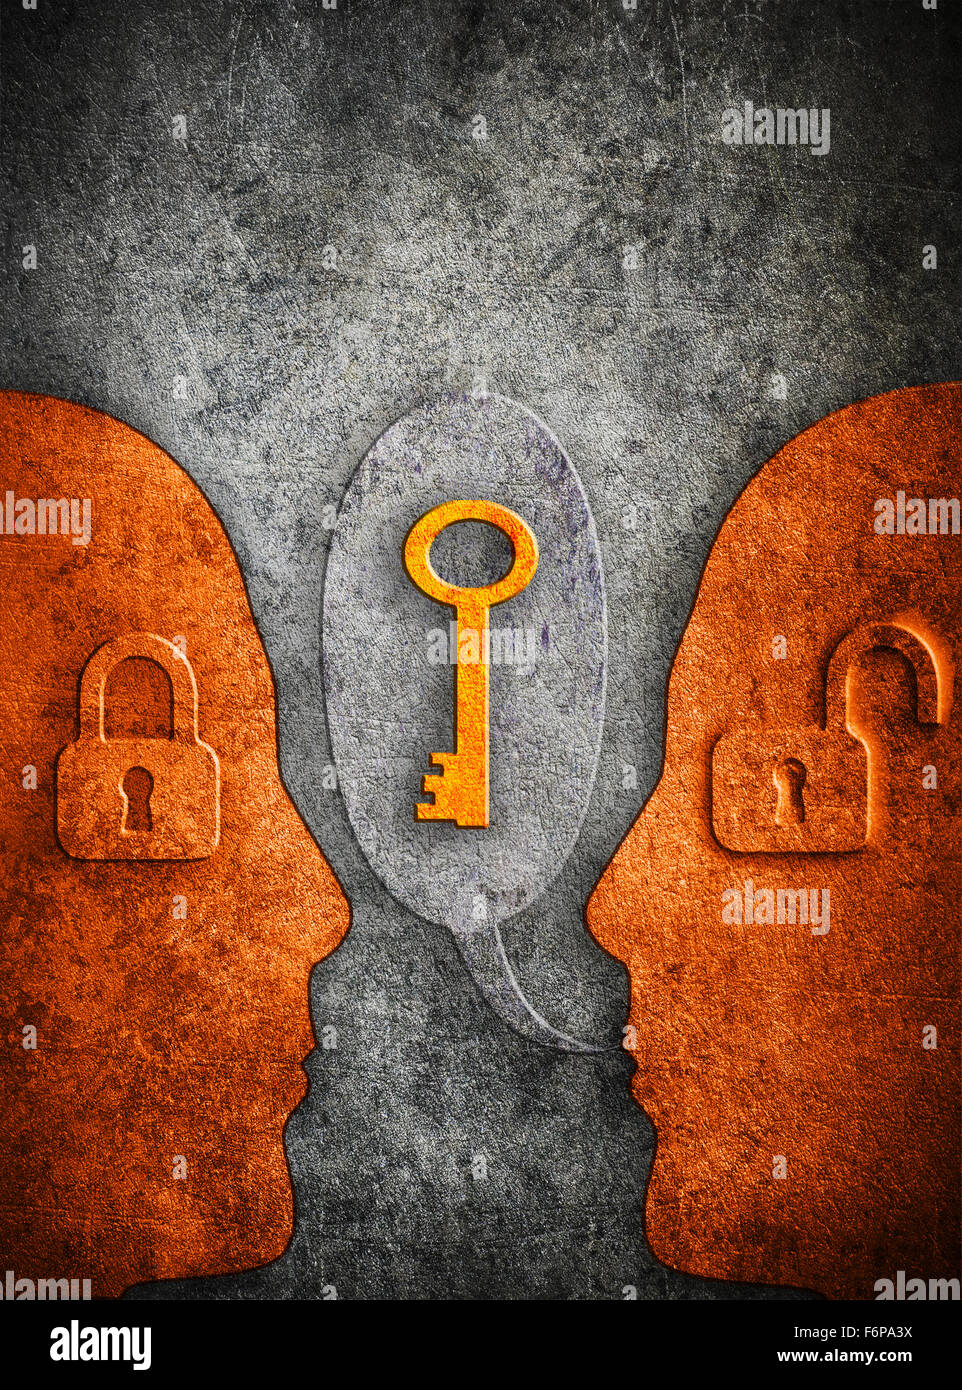 knowledge digital illustration concept with human silhouette padlocks  and copy space - Stock Image